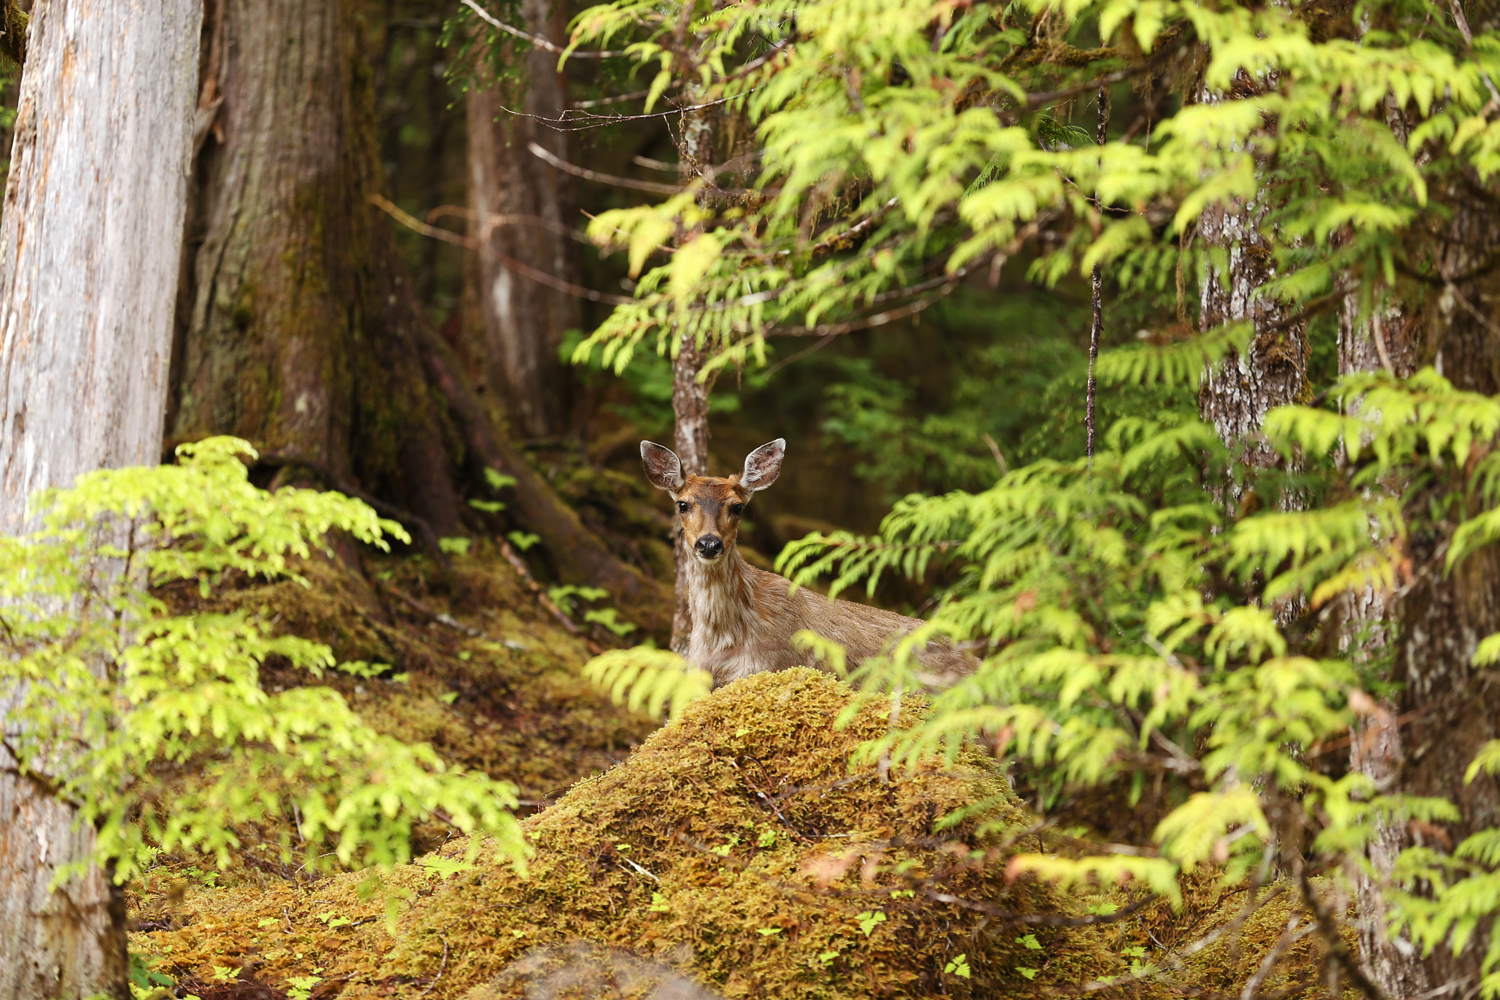 Old growth forest is very important winter habitat for deer.